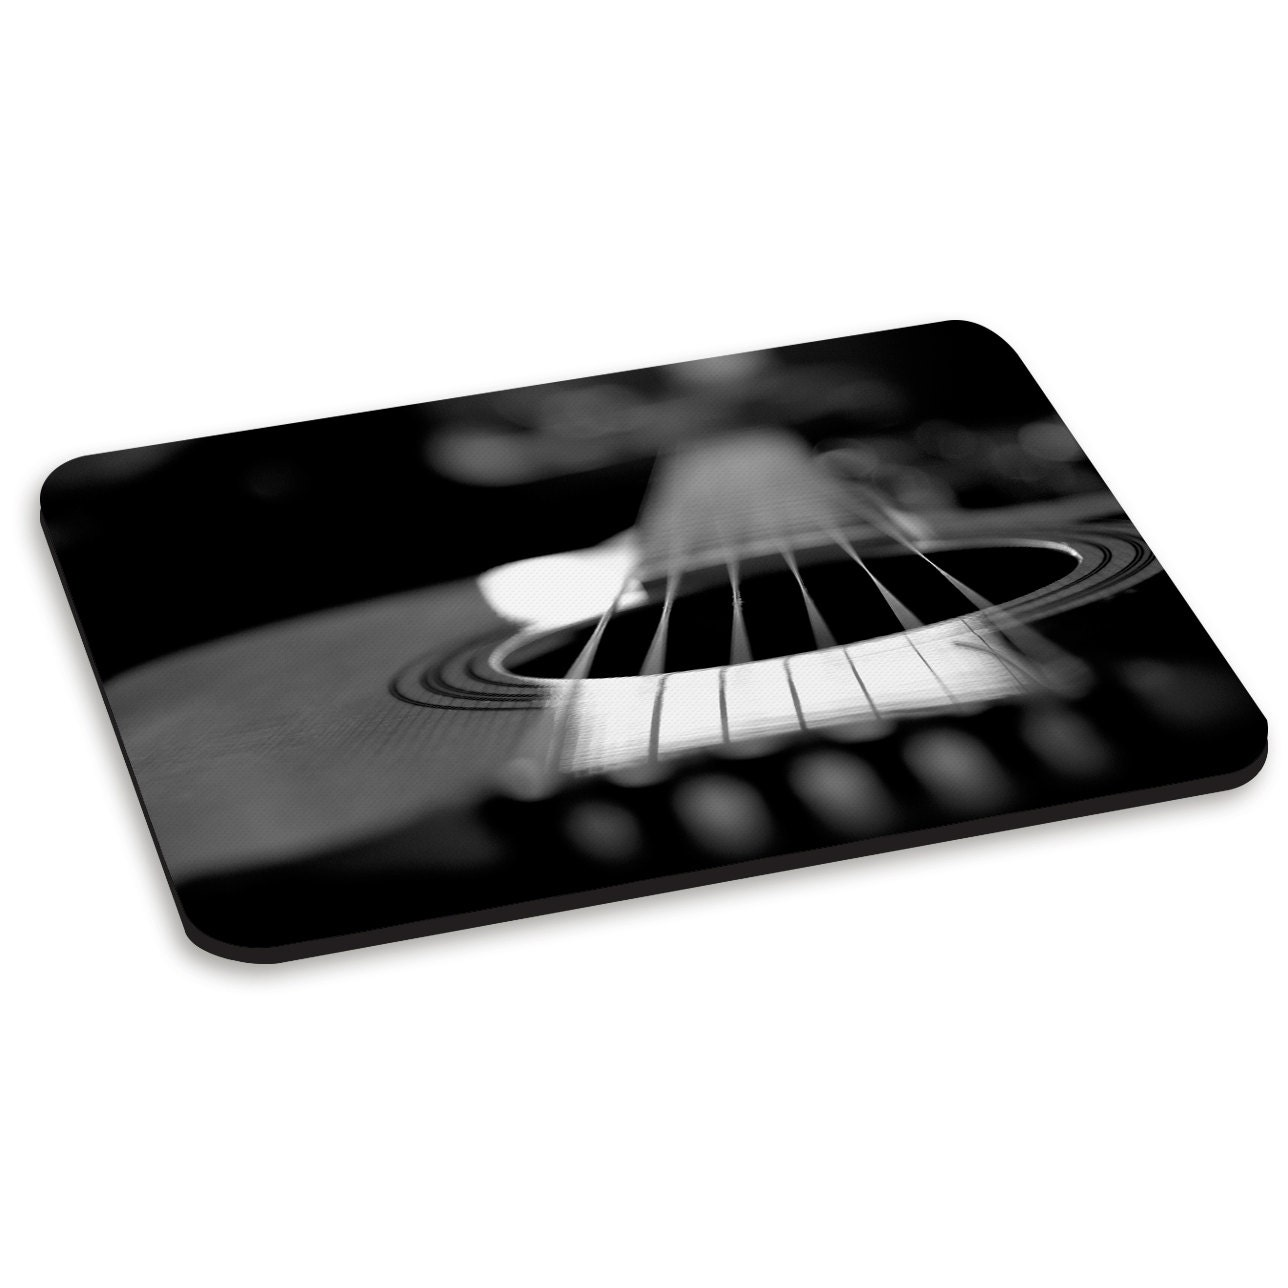 Acoustic Guitar Black and White PC Computer Mouse Mat Pad